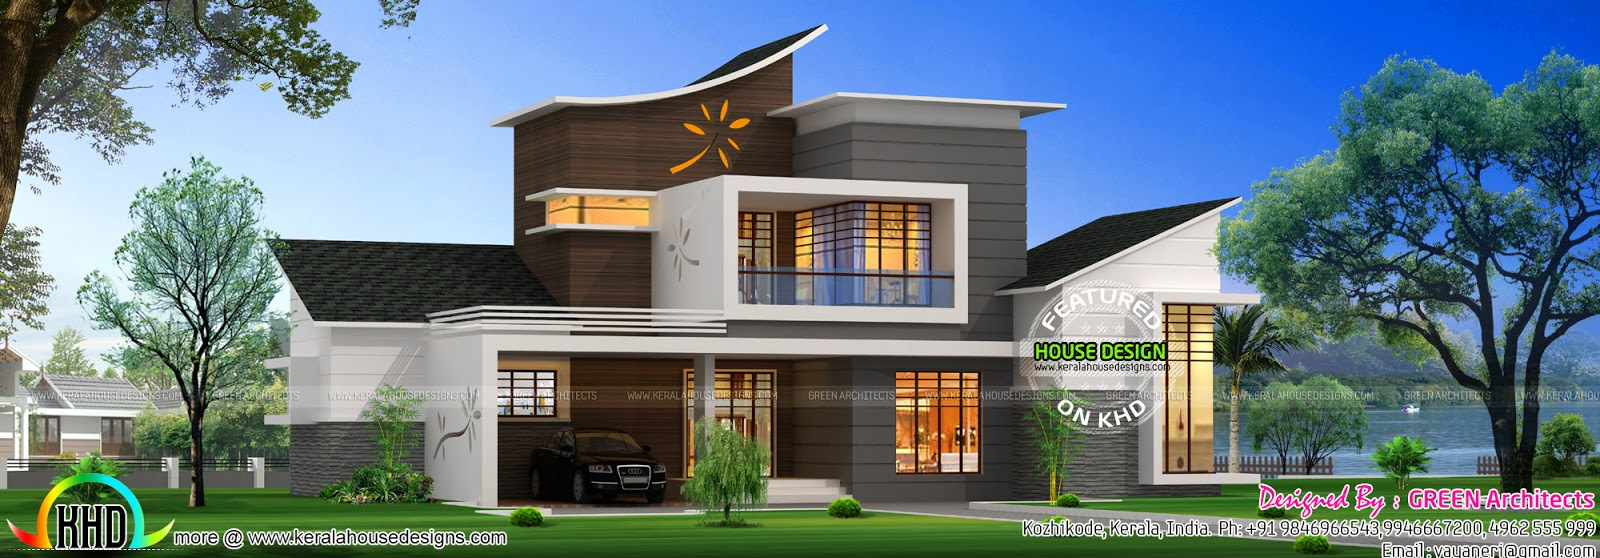 Modern House Design | Home Sweet Home (Outdoor) | Pinterest | Modern House  Design, Modern And House